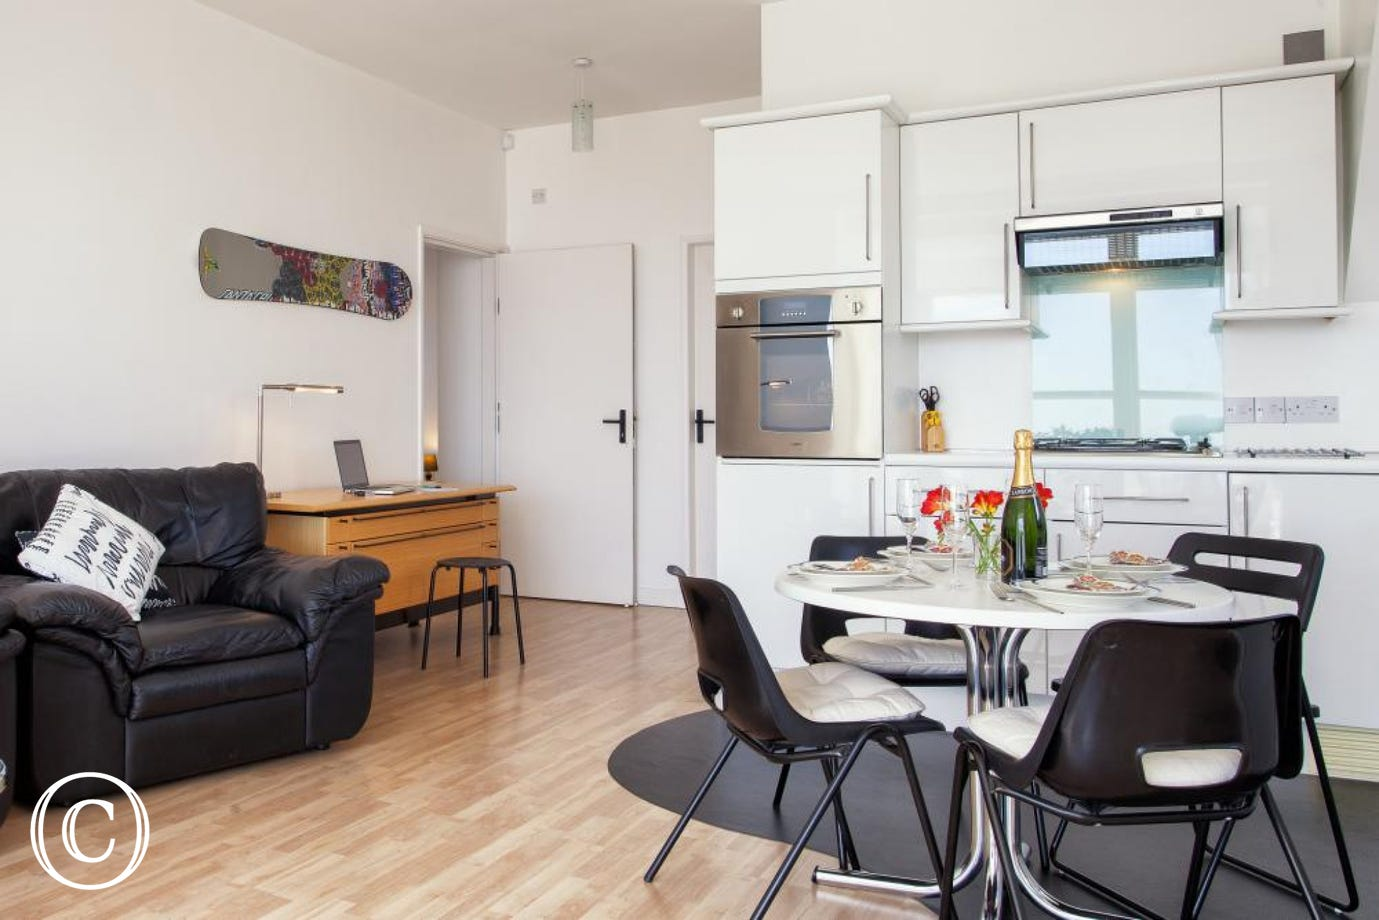 Modern Self-Catering Breaks in The English Riviera at Ben's Place Apartment in Torquay